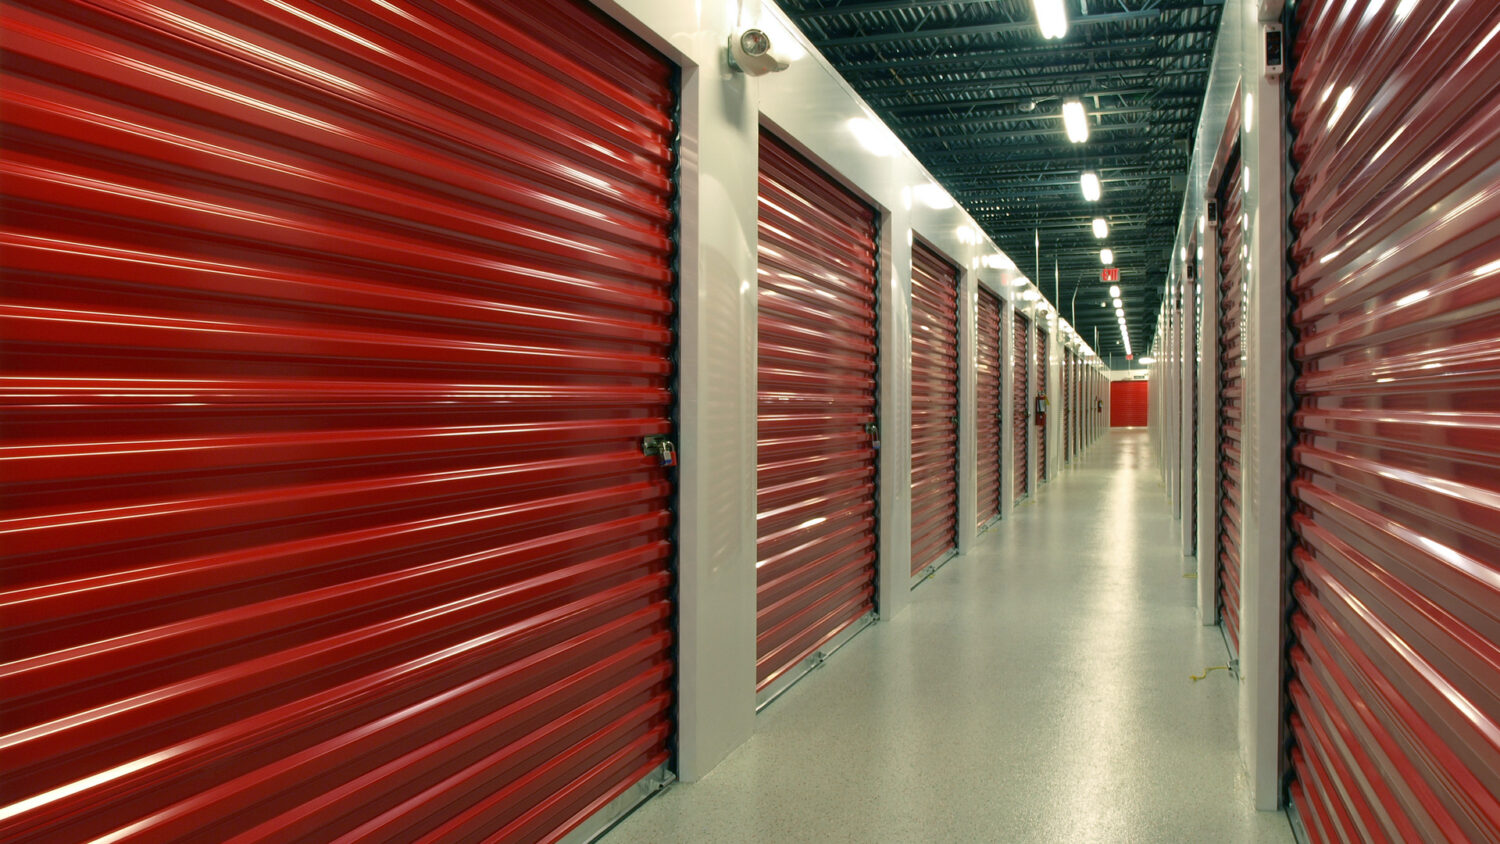 Simply sheds (not beds): Blackstone's BREIT to buy Simply Self Storage